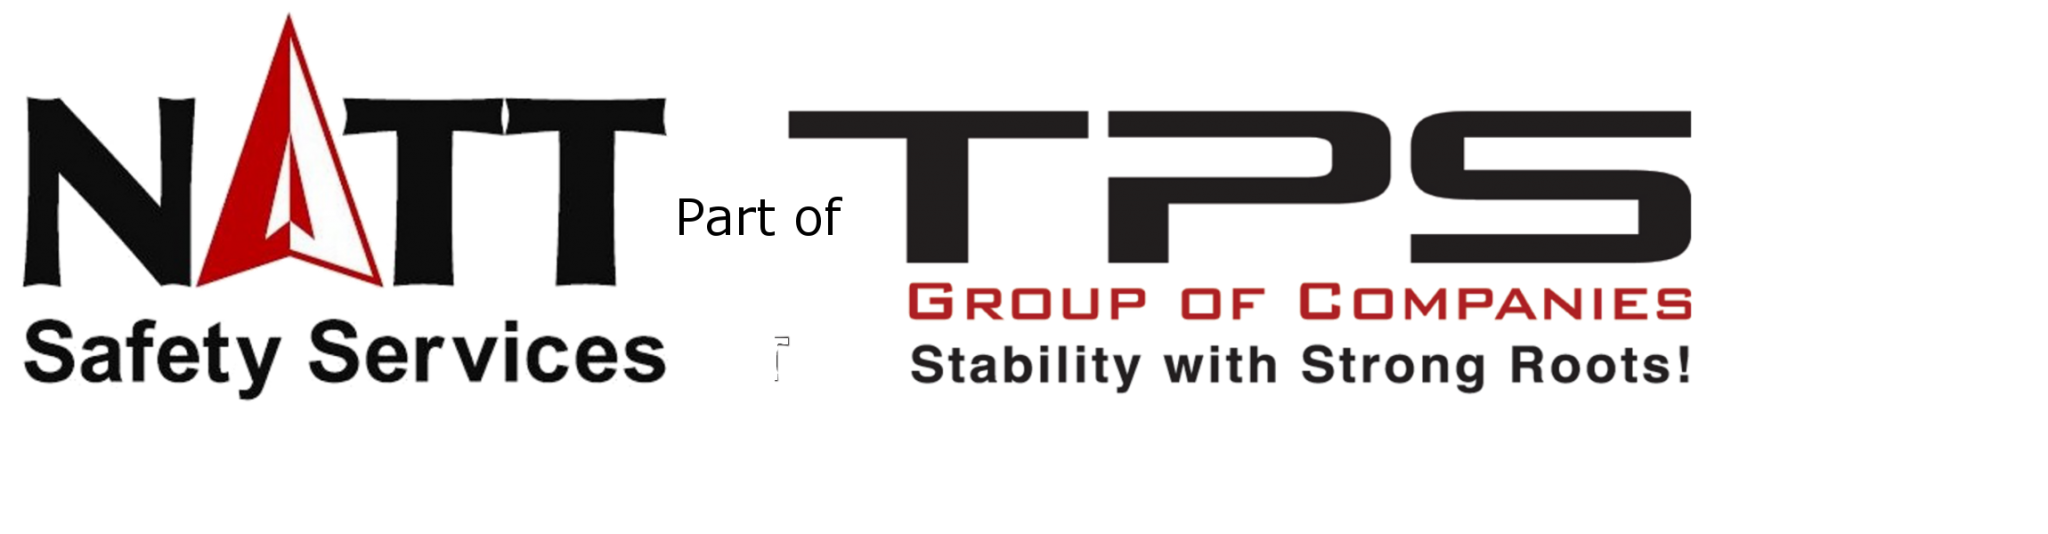 natt safety services part of tps group of companies